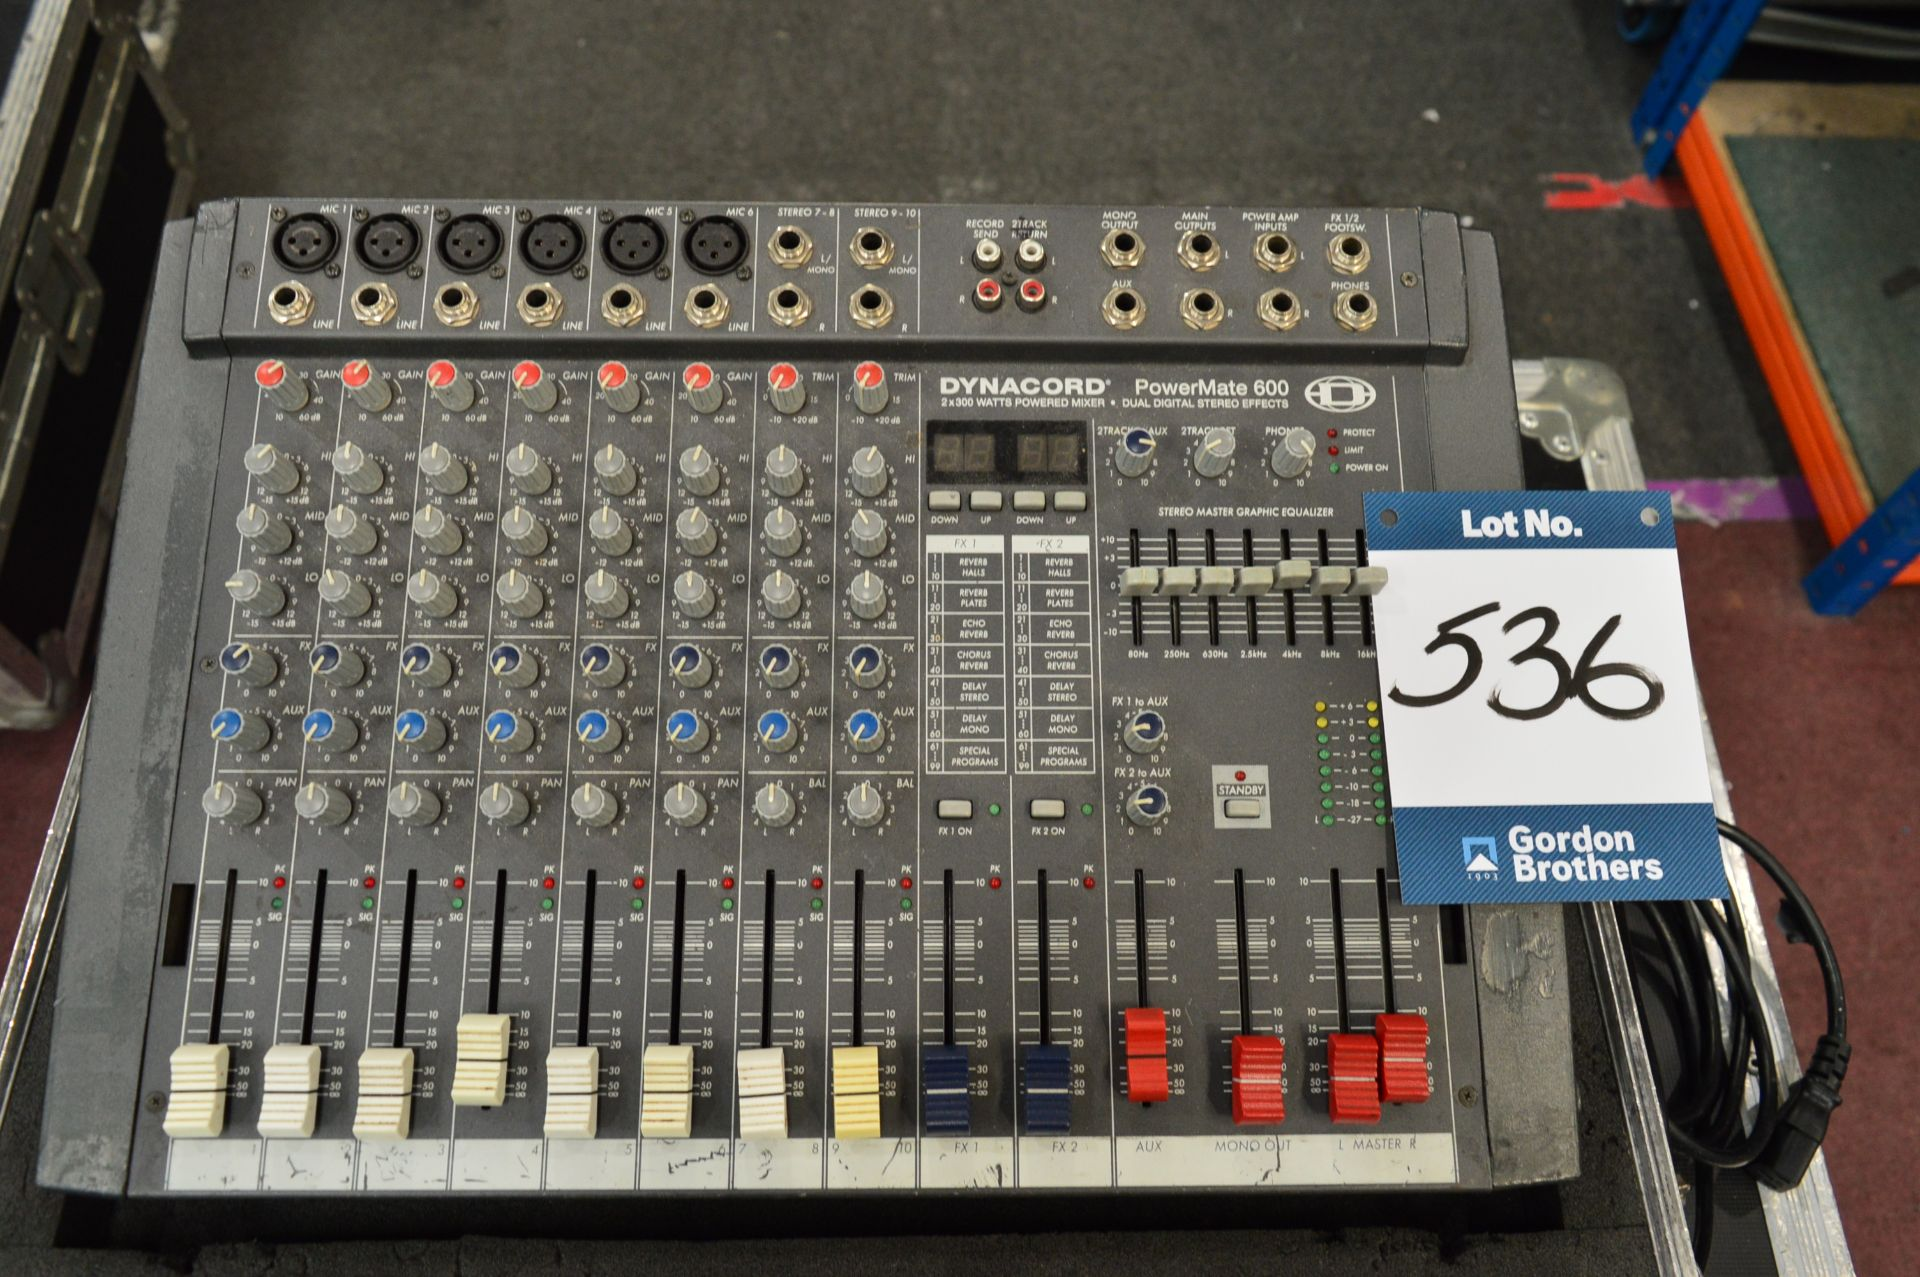 Lot 536 - Dynacord, Powermate 600 2x 300w eight channel comp